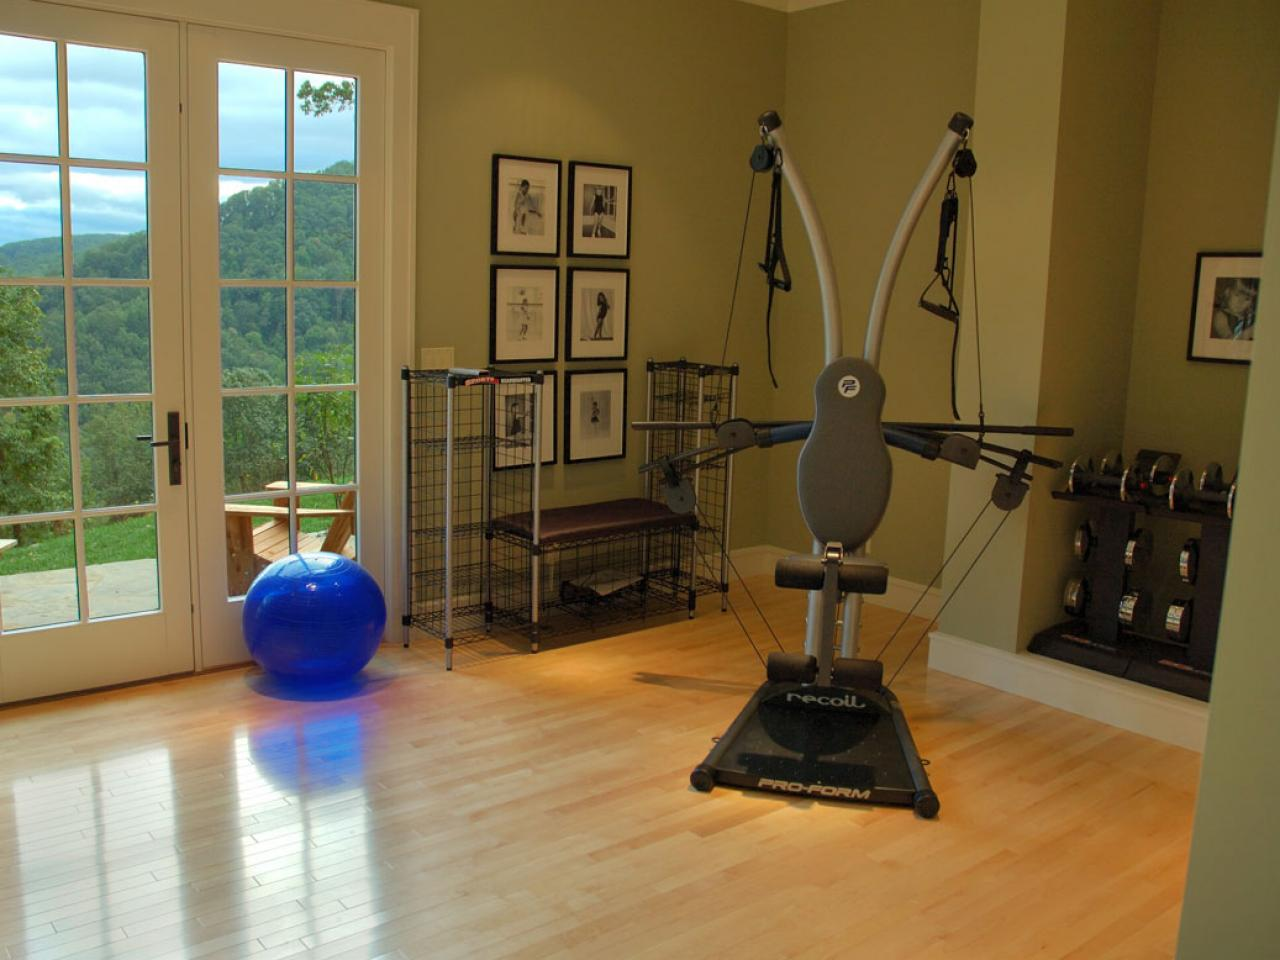 Serene exercise rooms decorating and design ideas for Home gym decor ideas